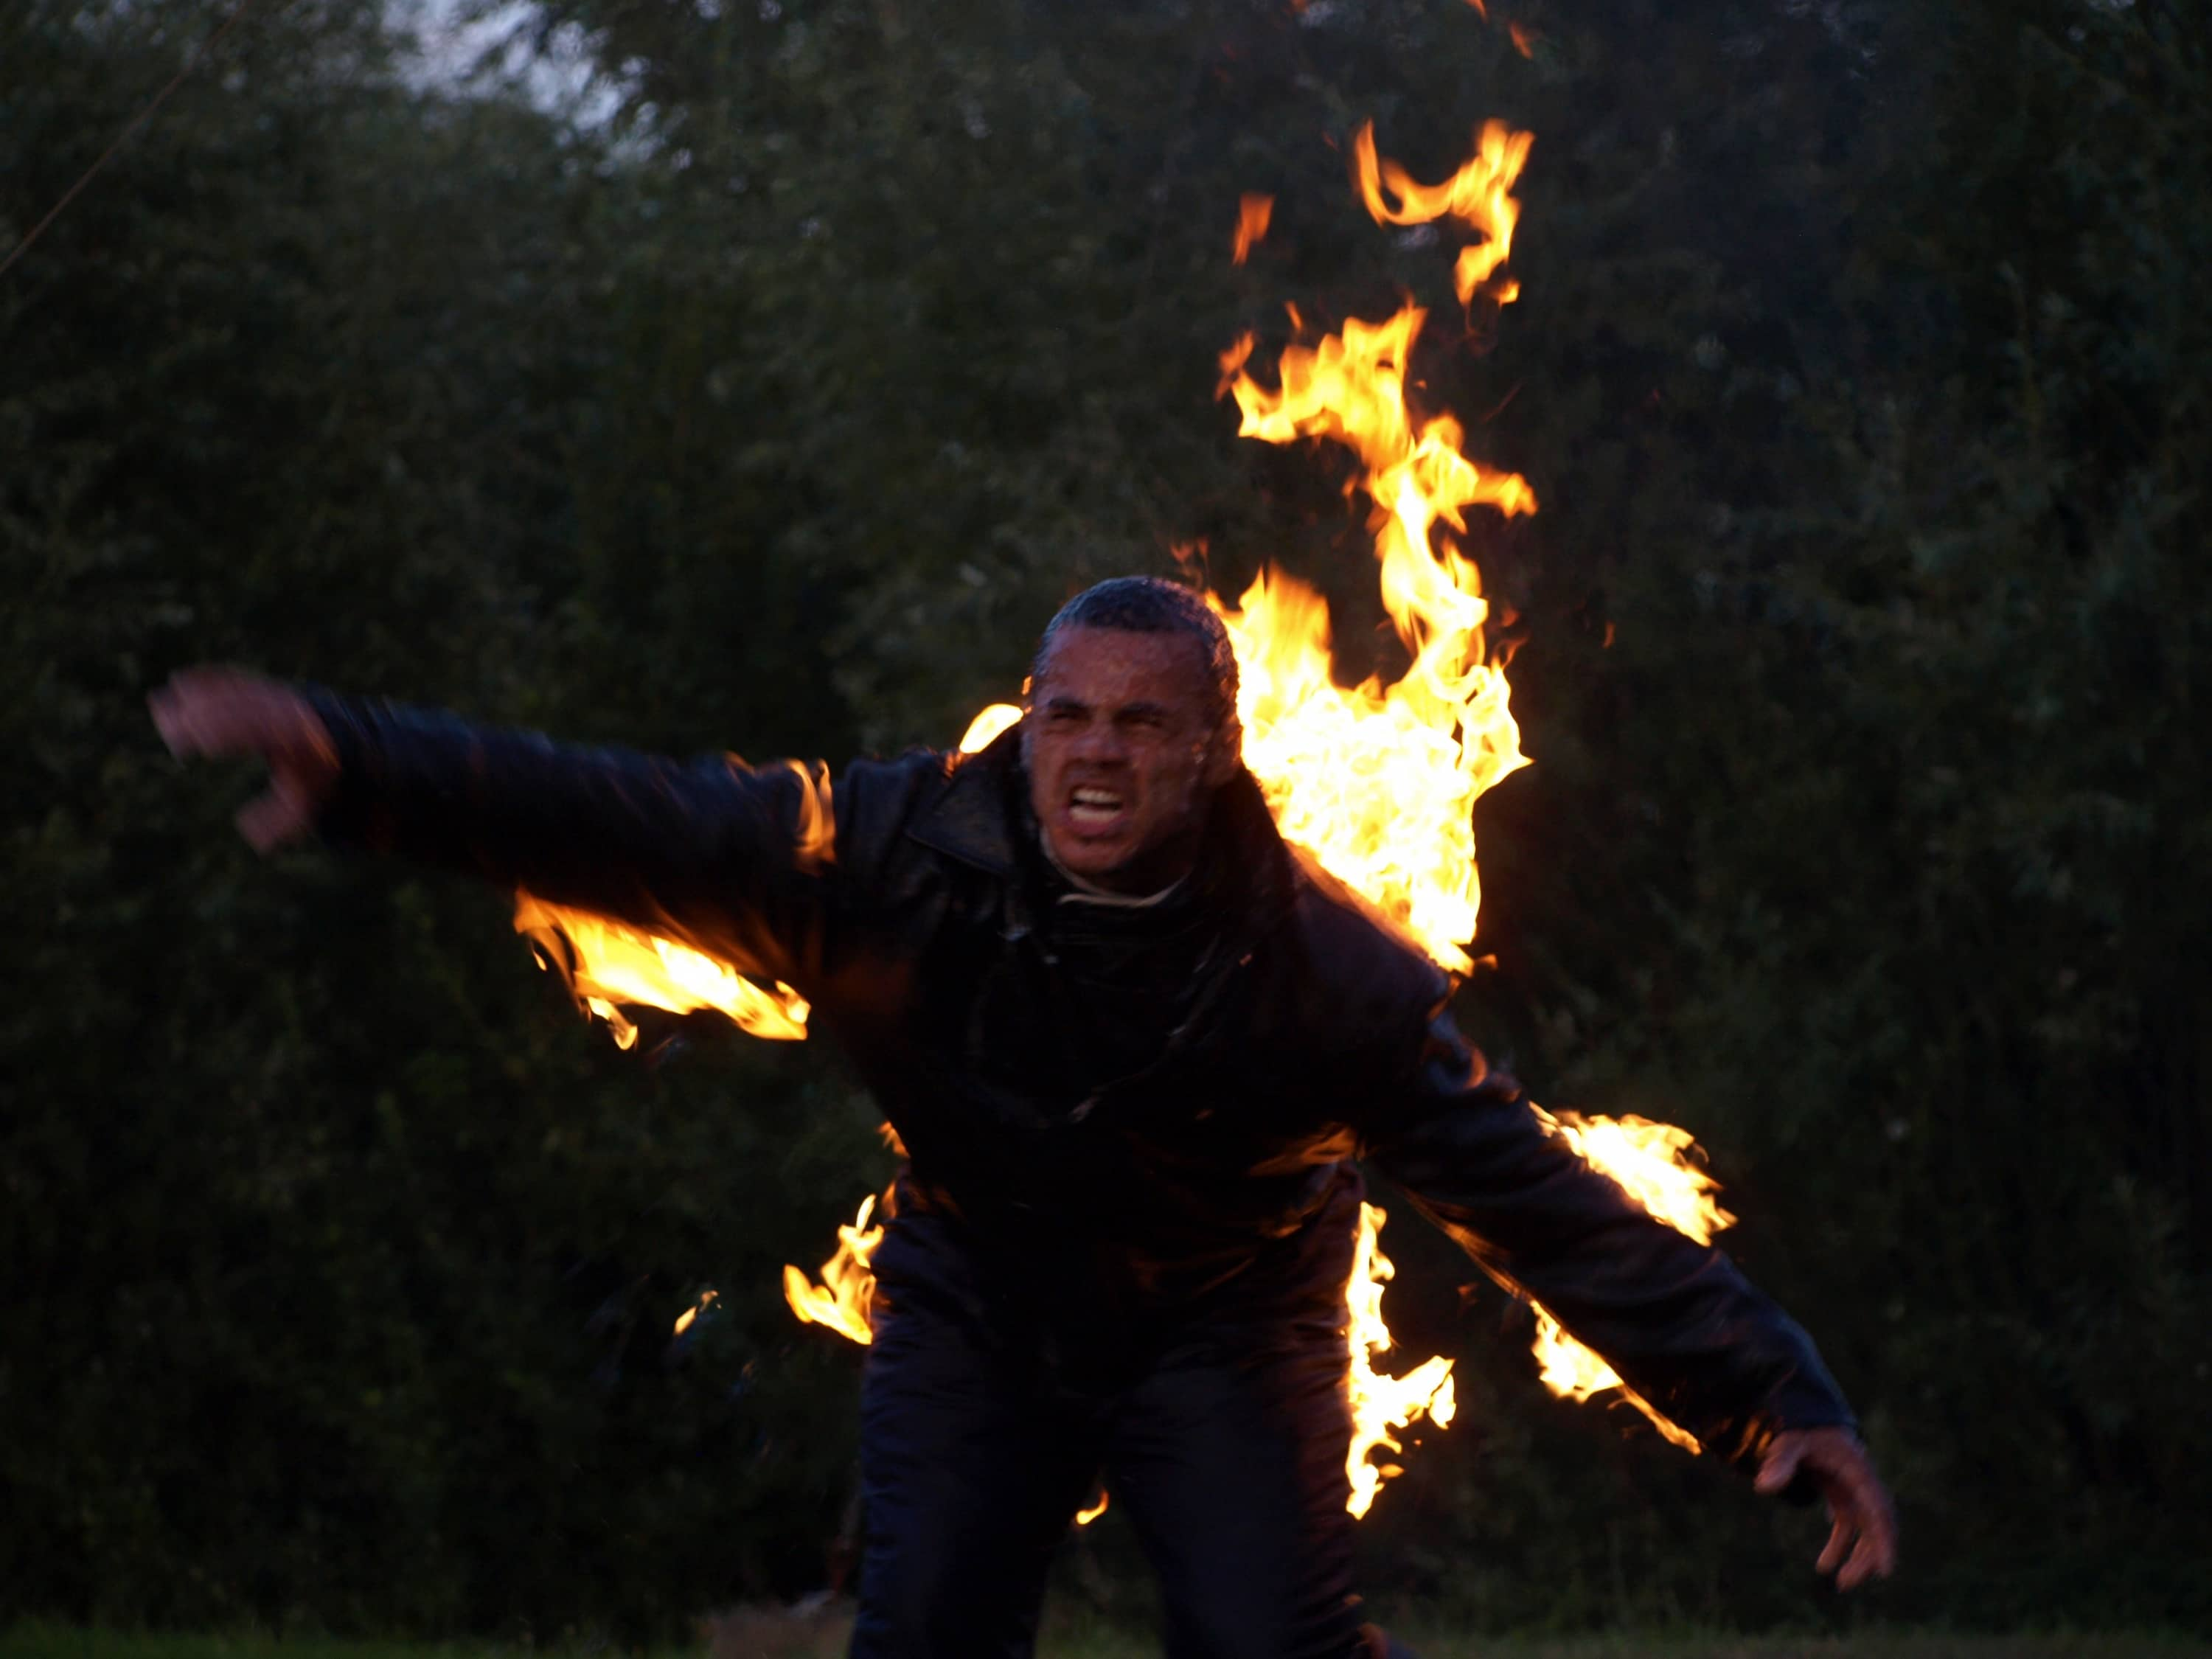 Burning Stuntman in videoclip, tv programma of film.